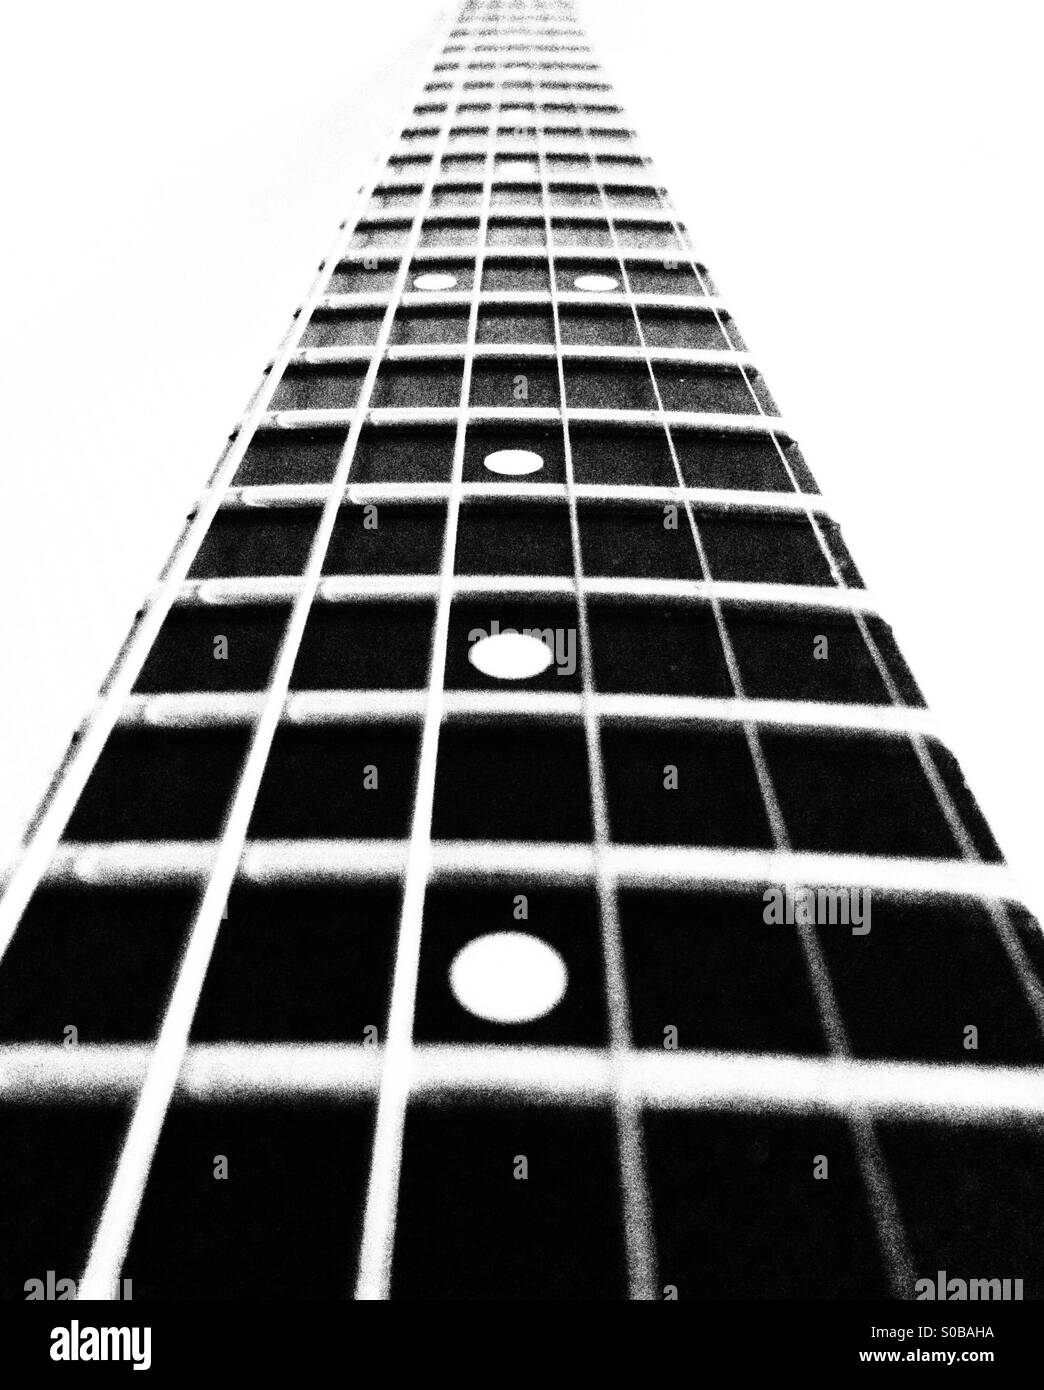 Guitar Fretboard Steinberger GR4 in black and white - Stock Image